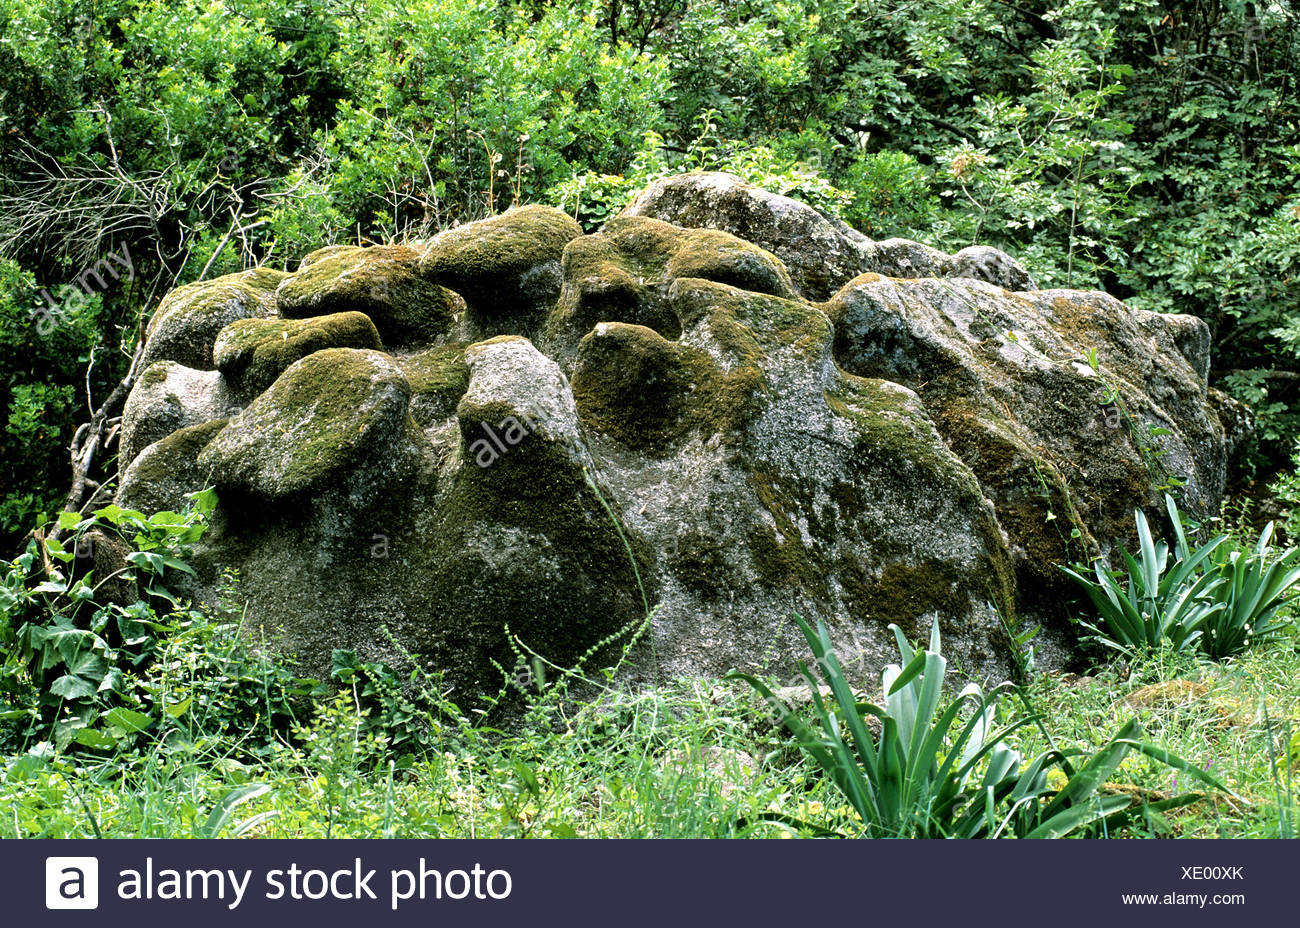 France Europe Corsica scenery near Filitosa prehistorically finding site boulder - Stock Image